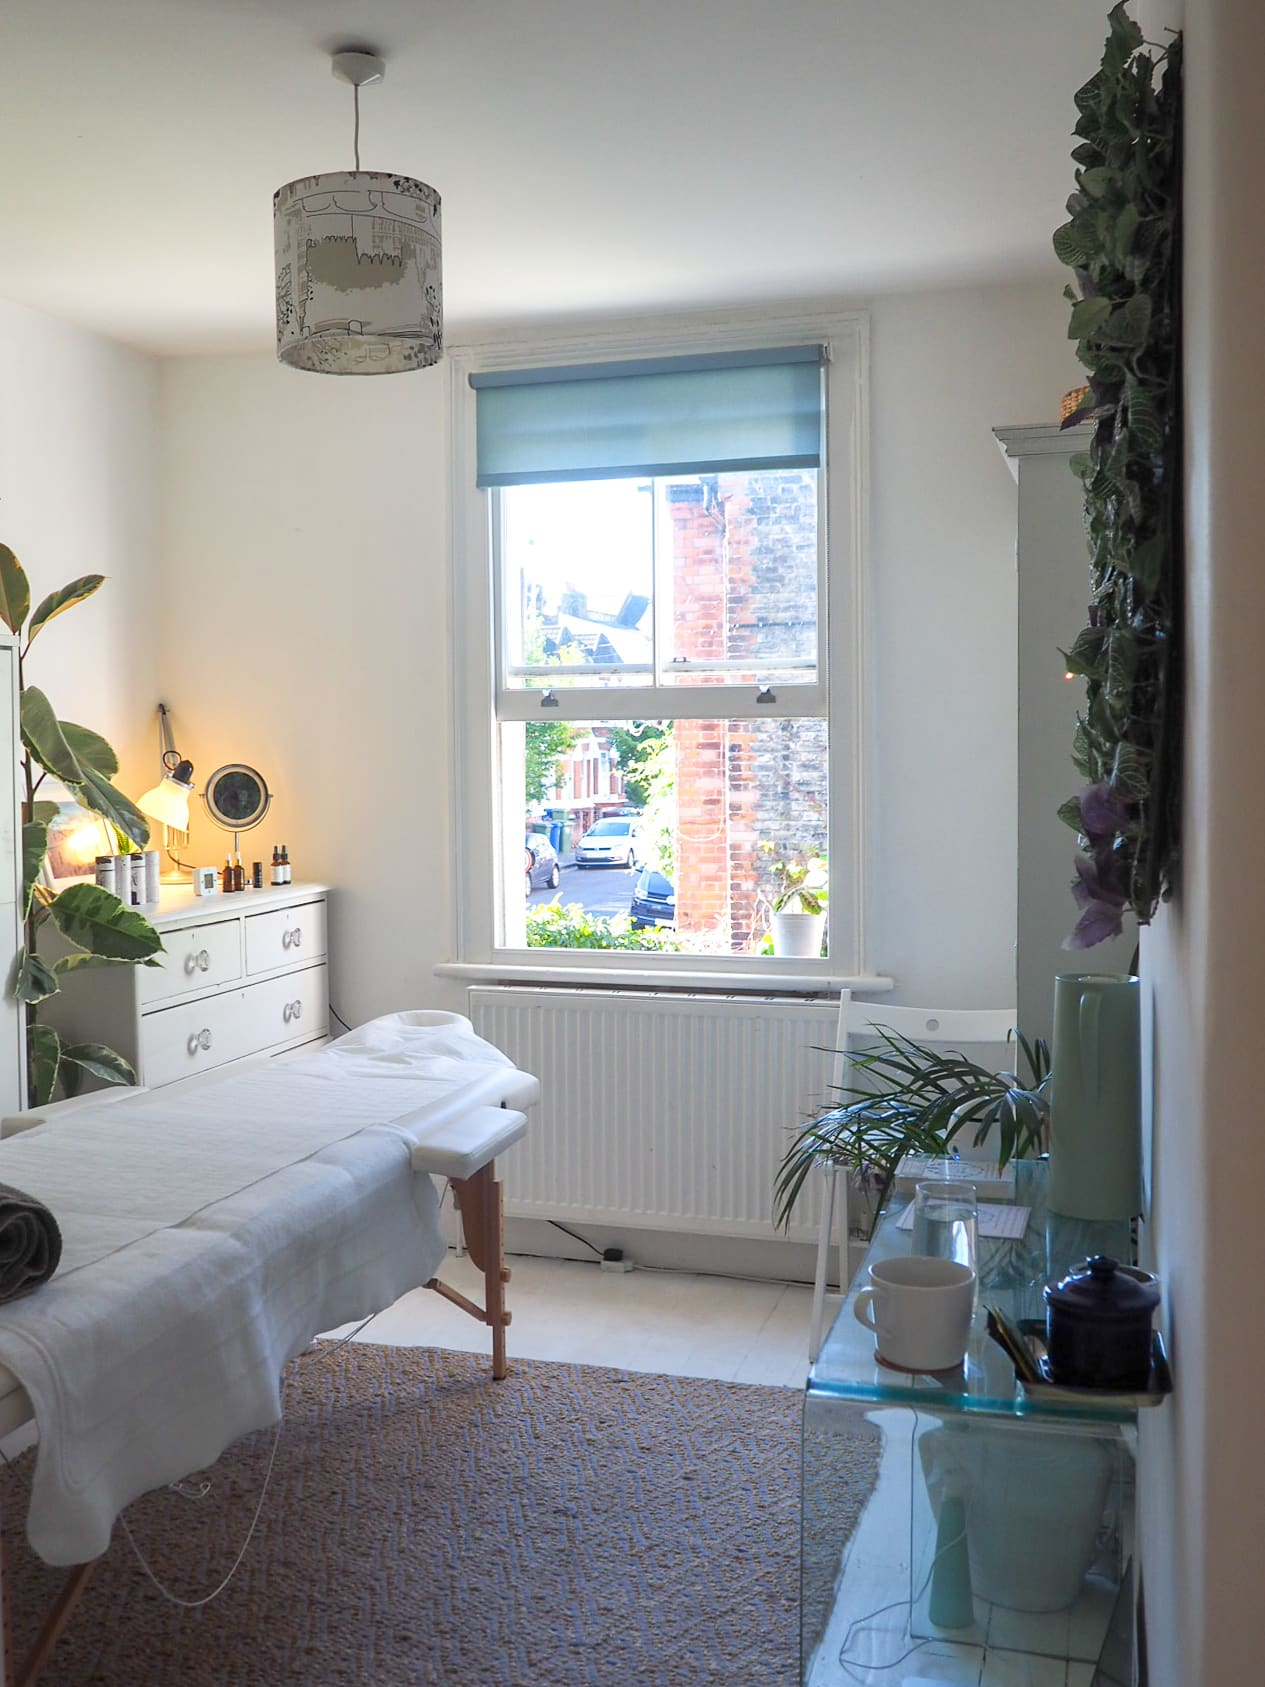 The Nourish Shed treatment room in Peckham